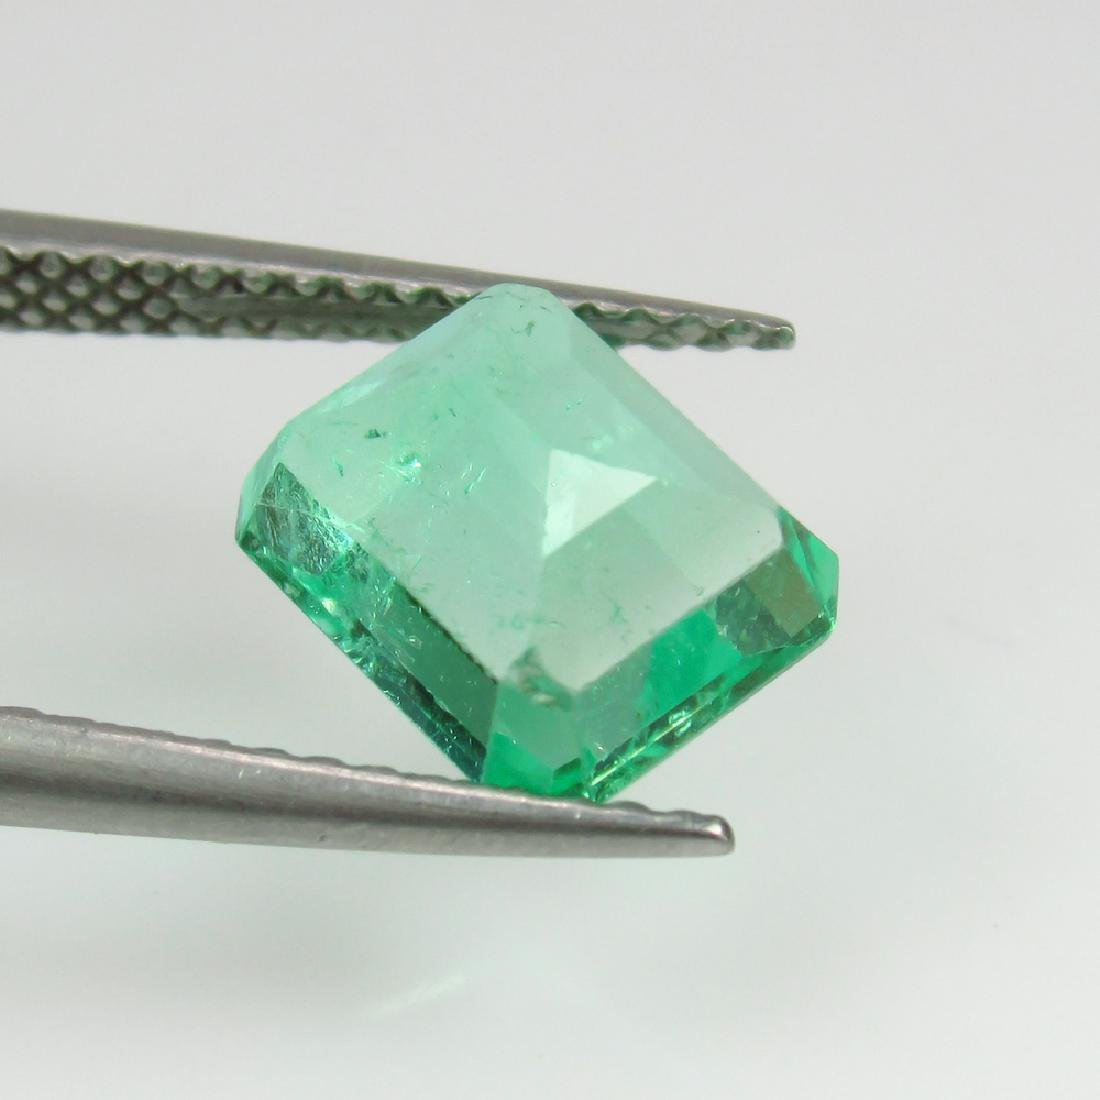 2.20 Ctw GRS Certified Natural Colombian Emerald - 4